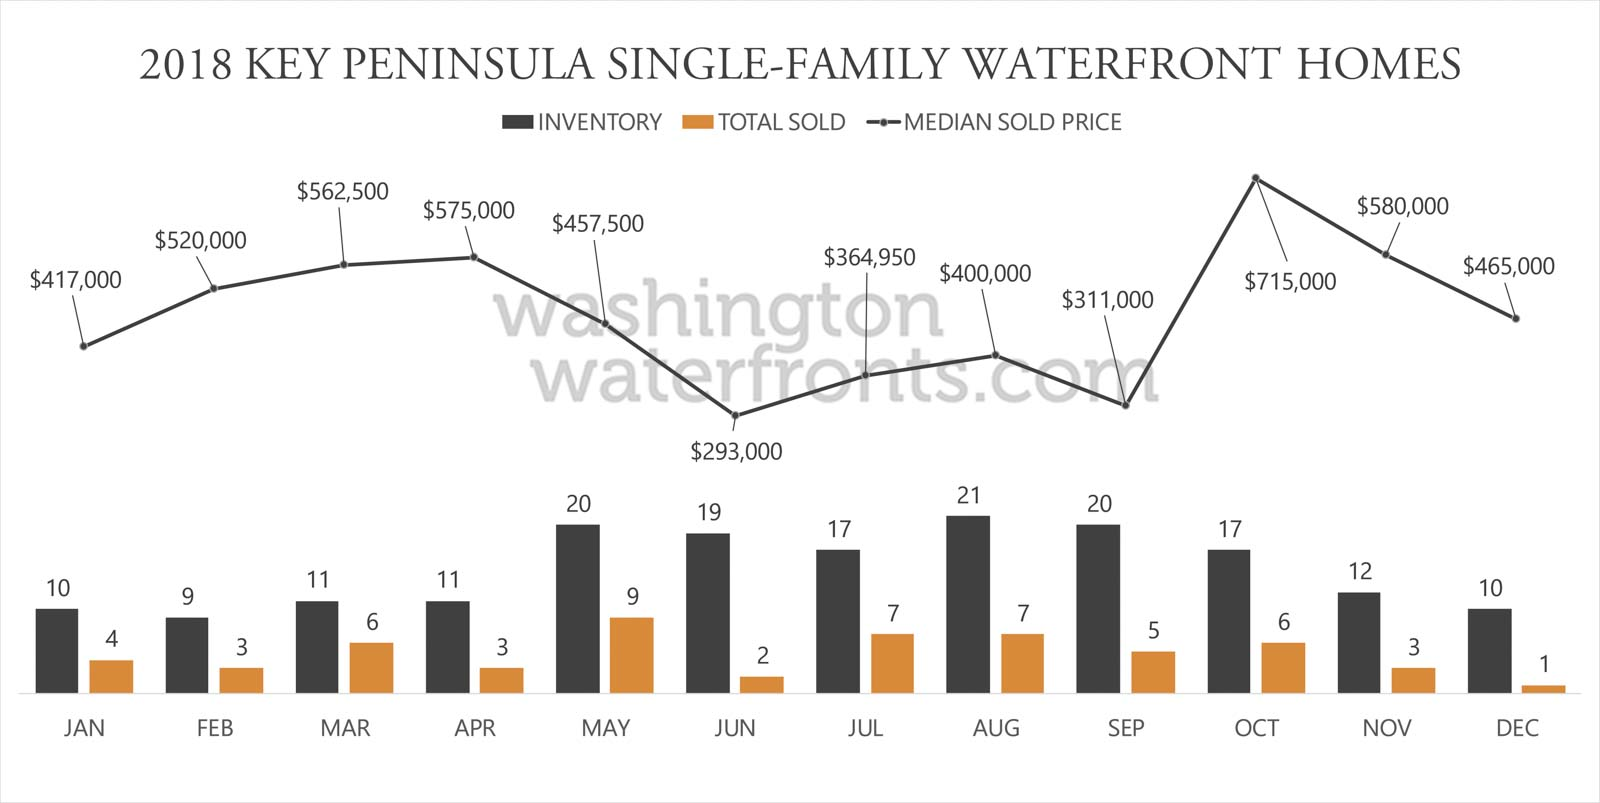 Key Peninsula Waterfront Inventory